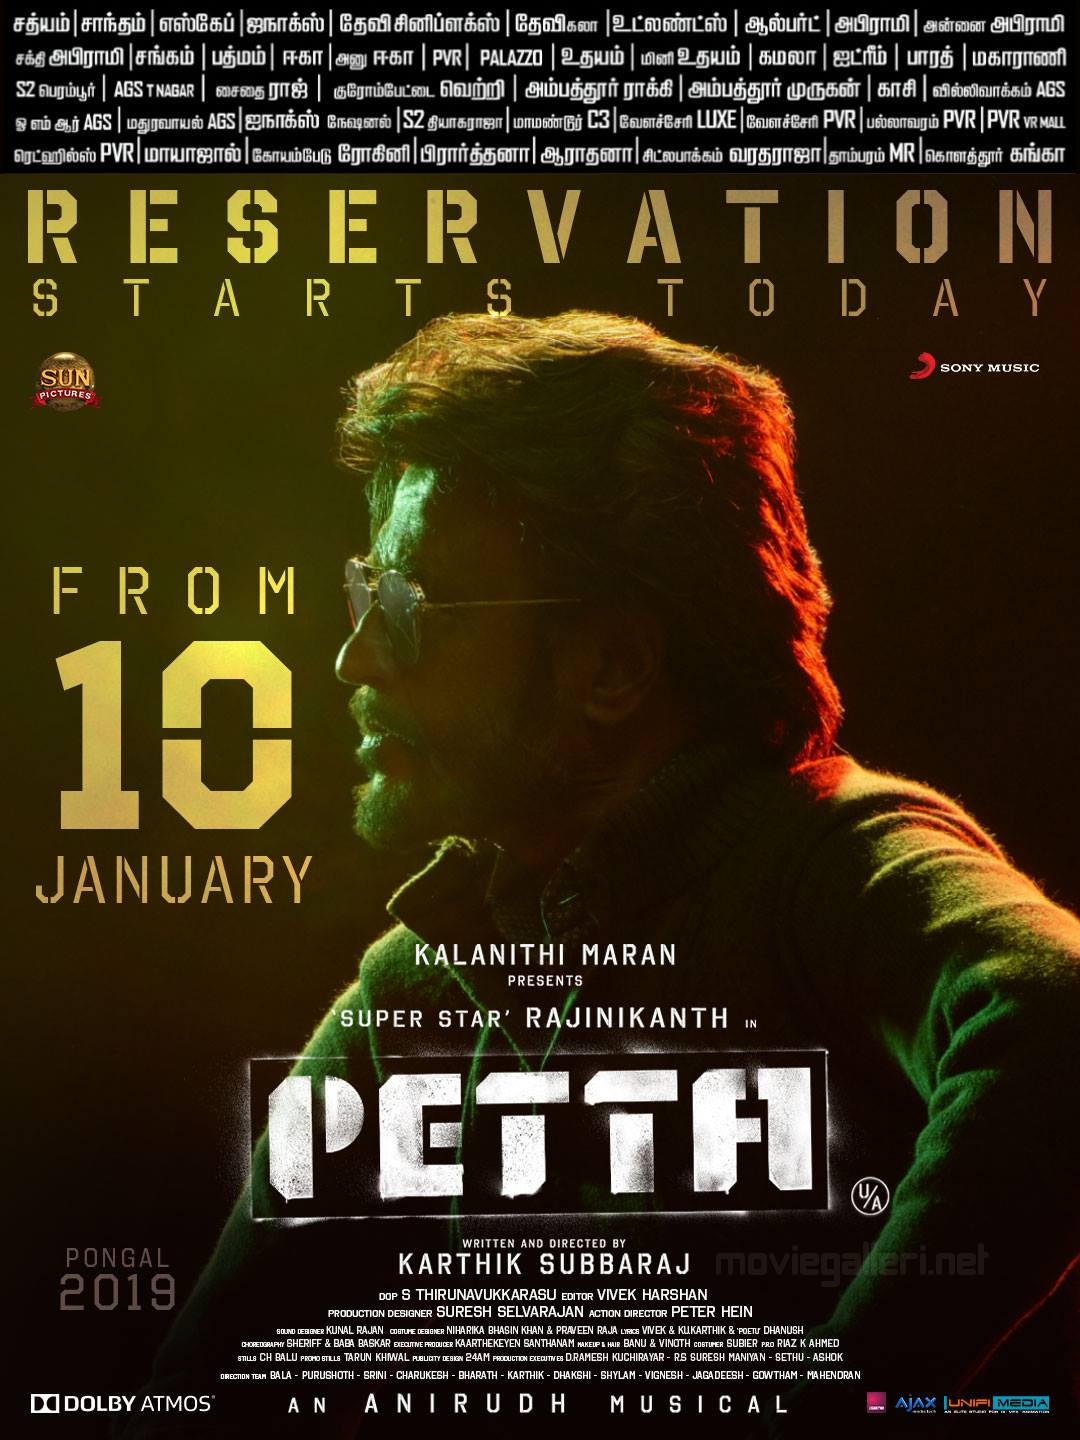 Rajinikanth Petta Reservation starts Today Poster HD